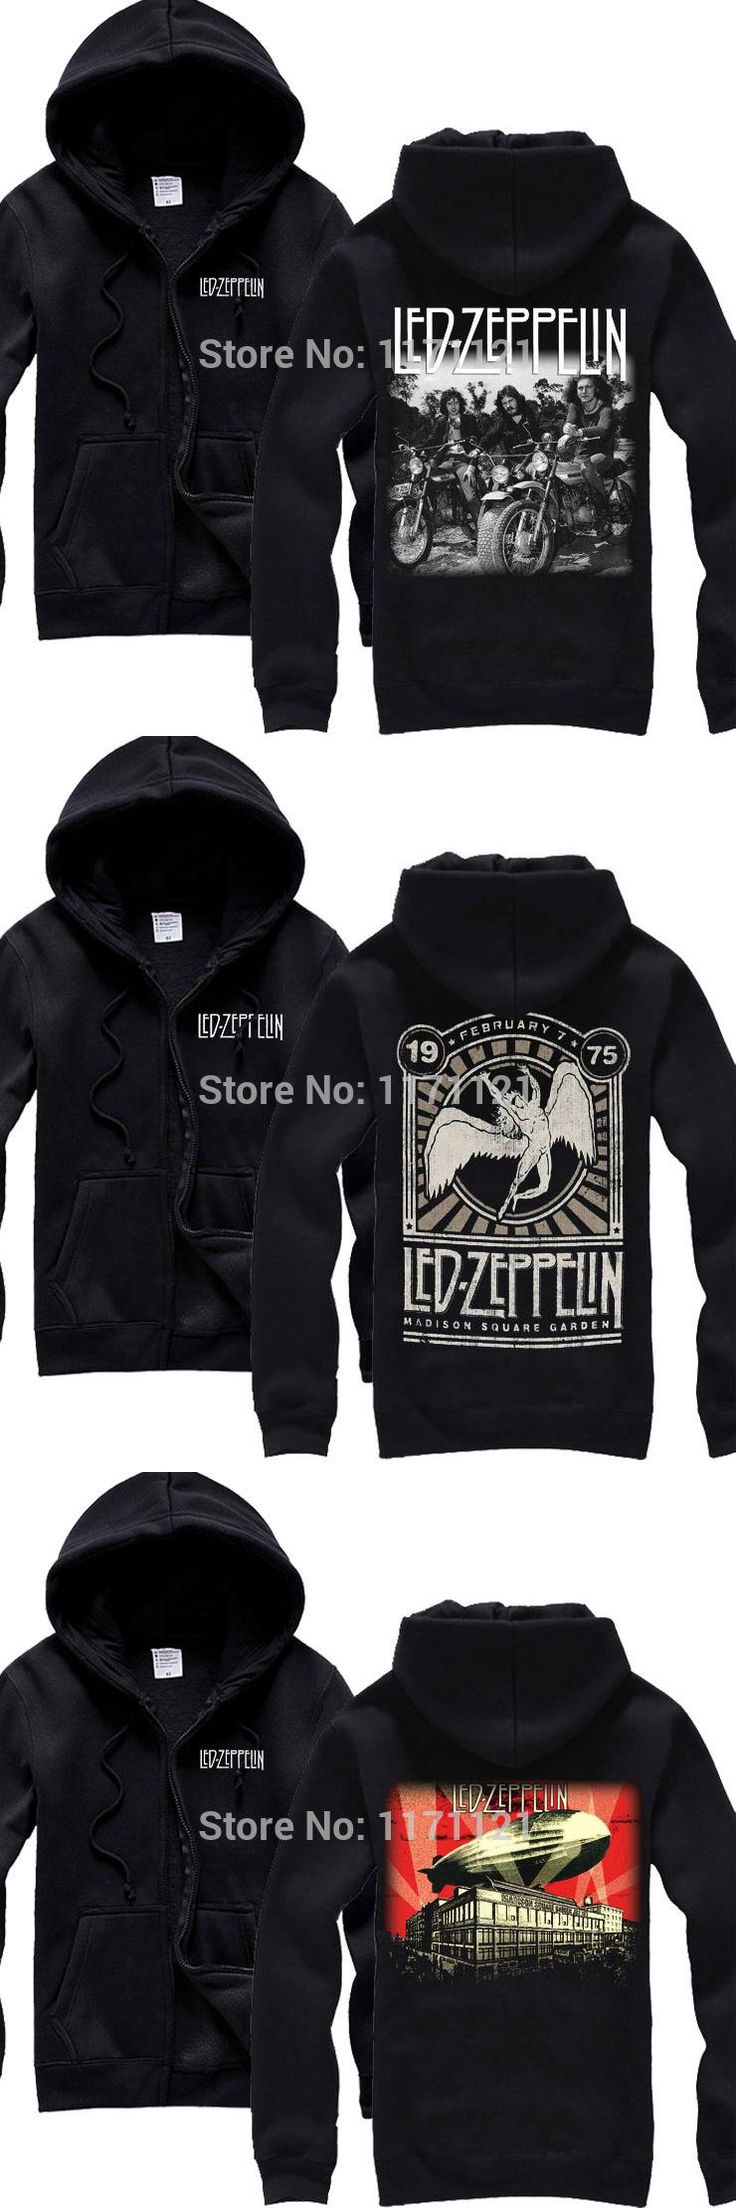 Free shipping  LED-ZEPPELIN  Arena Rock British Heavy Metal Blues Rock 100% cotton hoodie